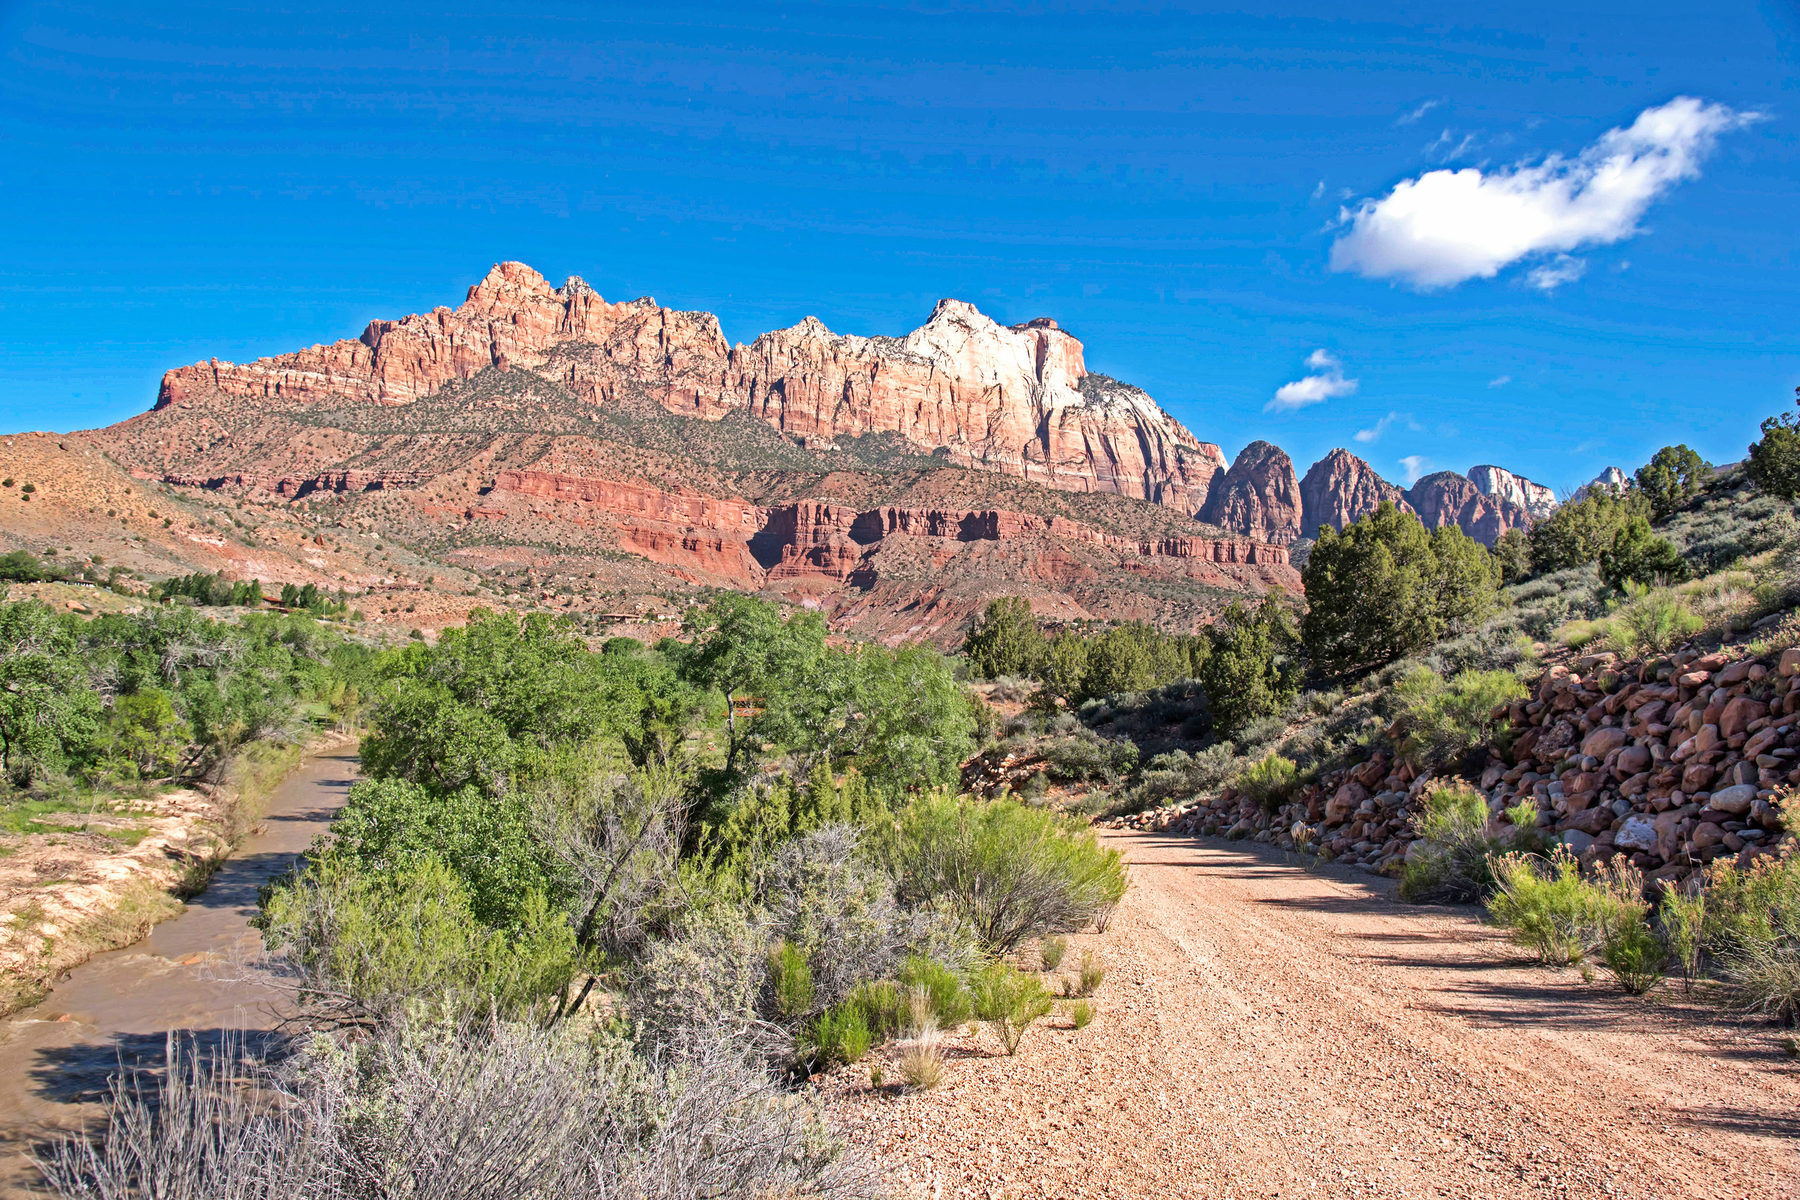 Land for Sale at ZION HIDEAWAY! 100 North Fork Rd Springdale, Utah 84767 United States